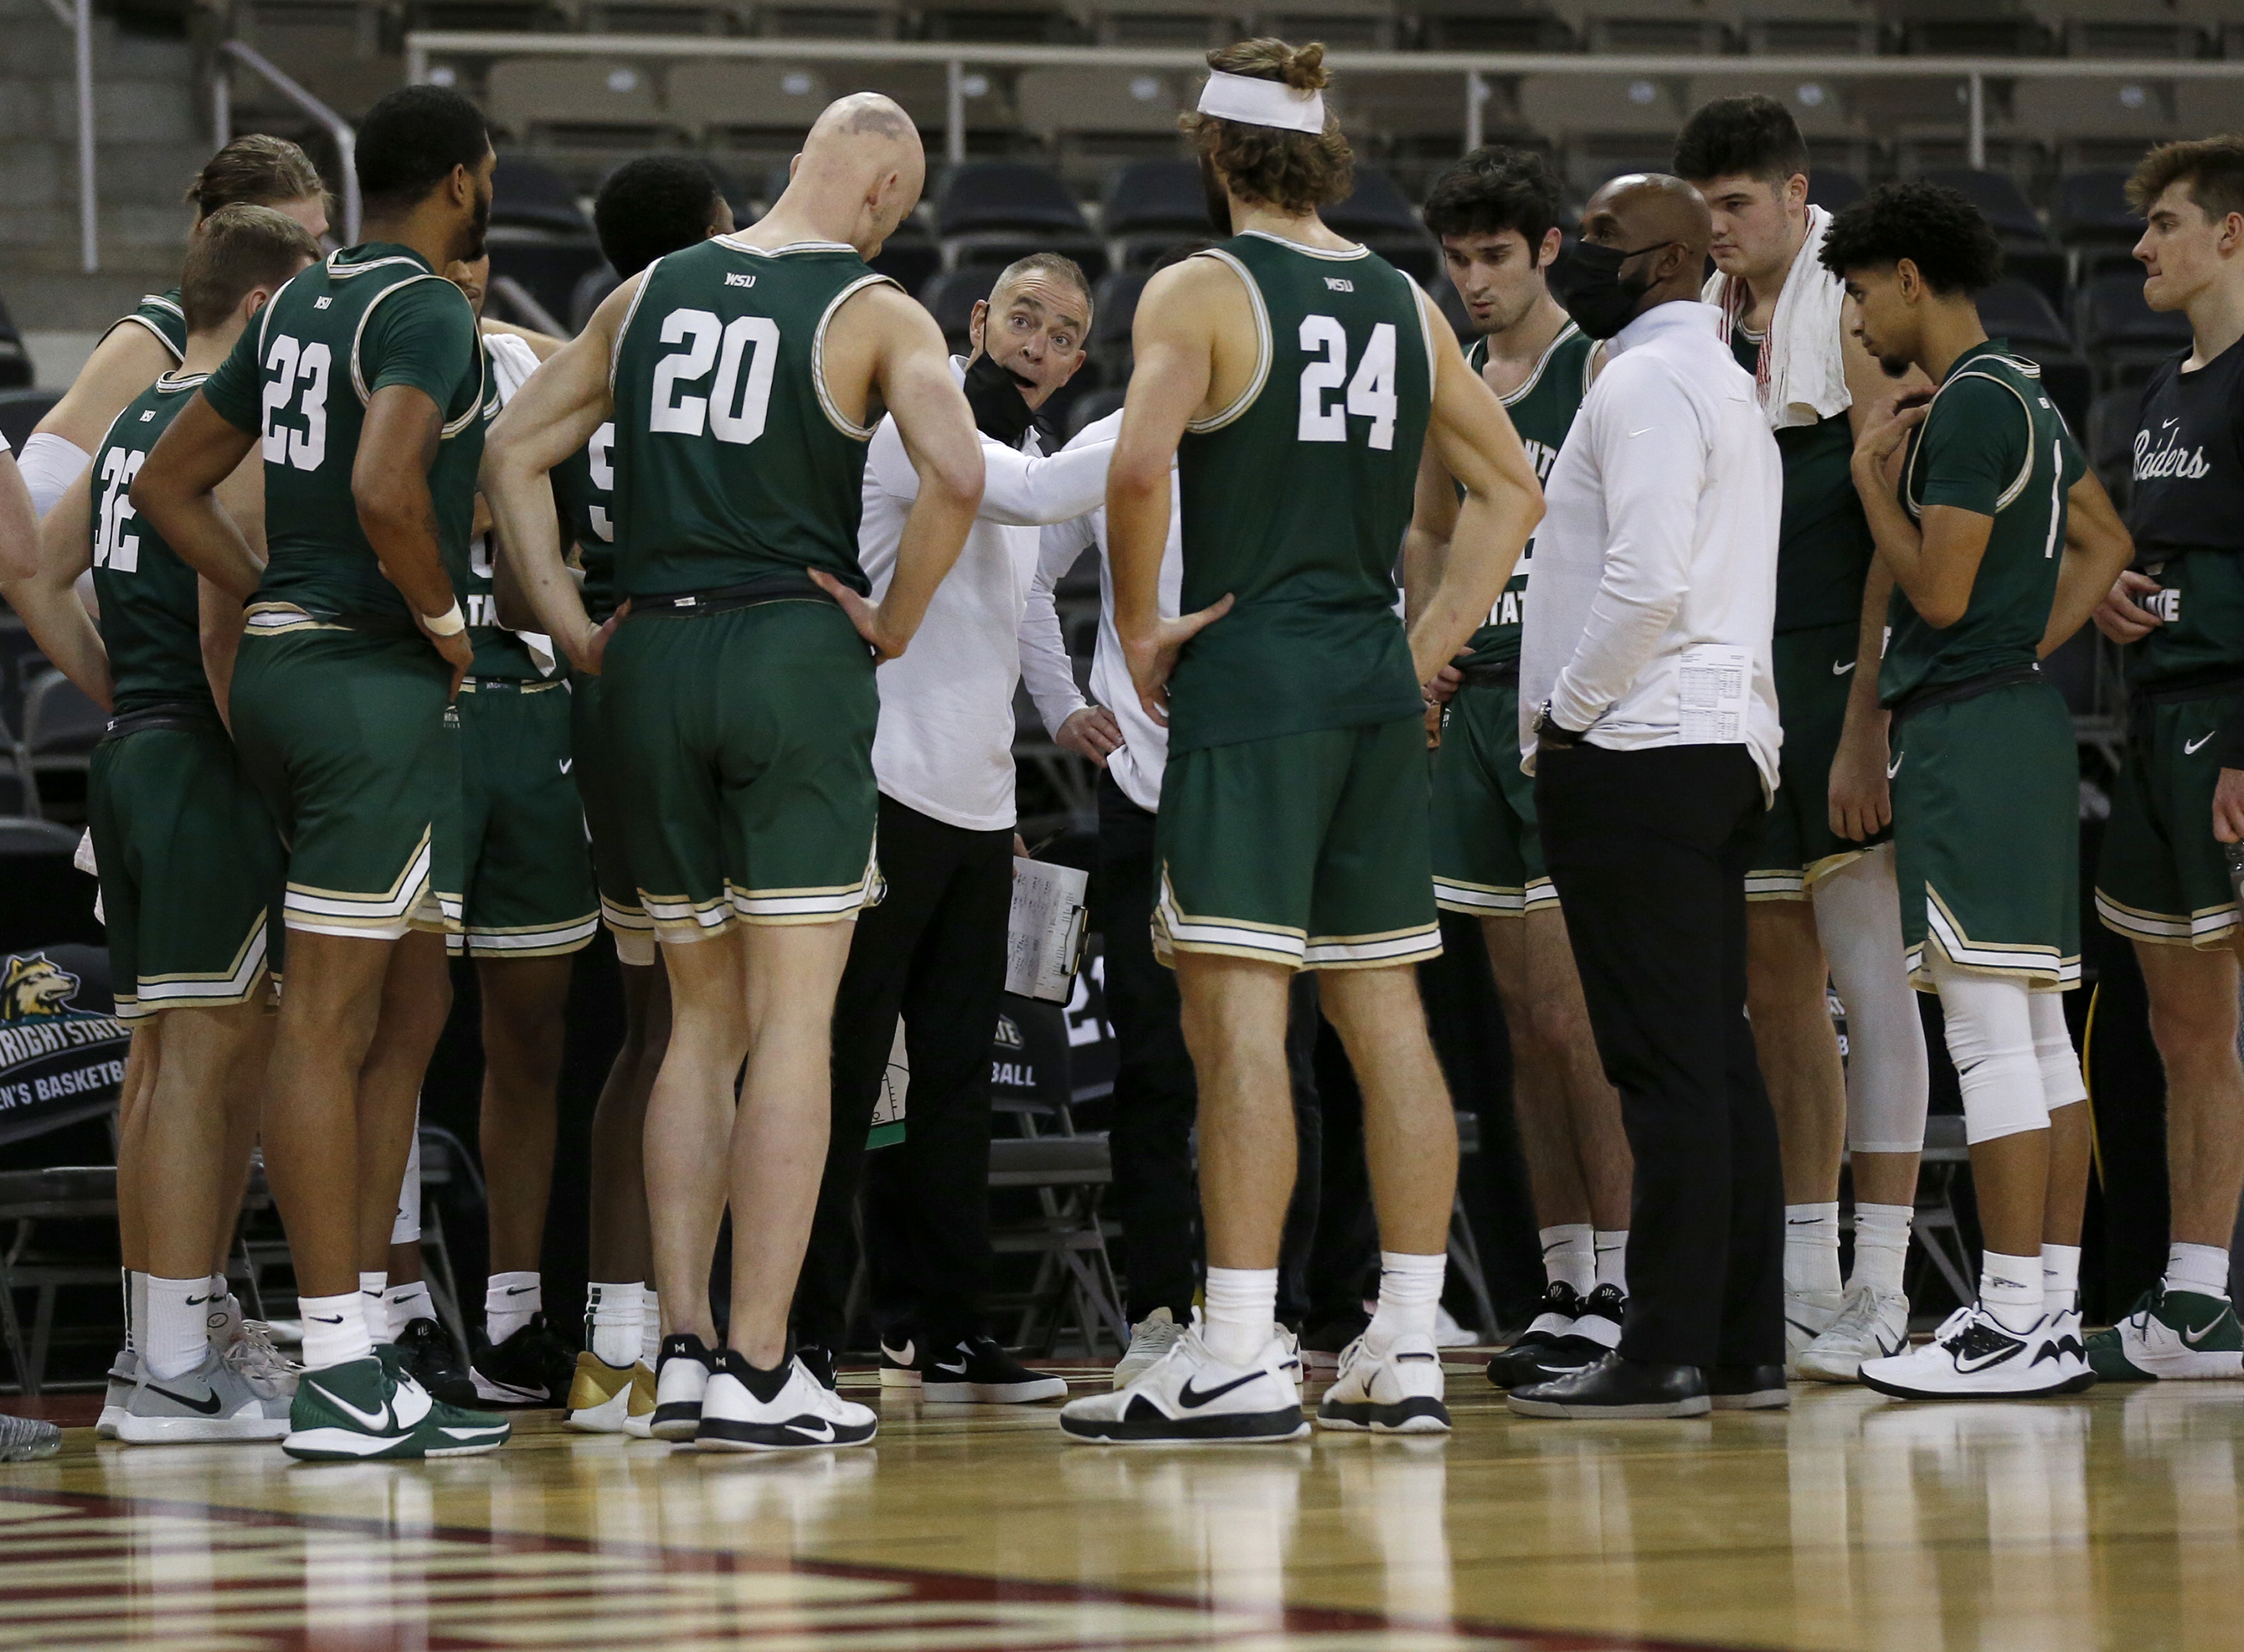 COLLEGE BASKETBALL: JAN 22 Wright State at IUPUI